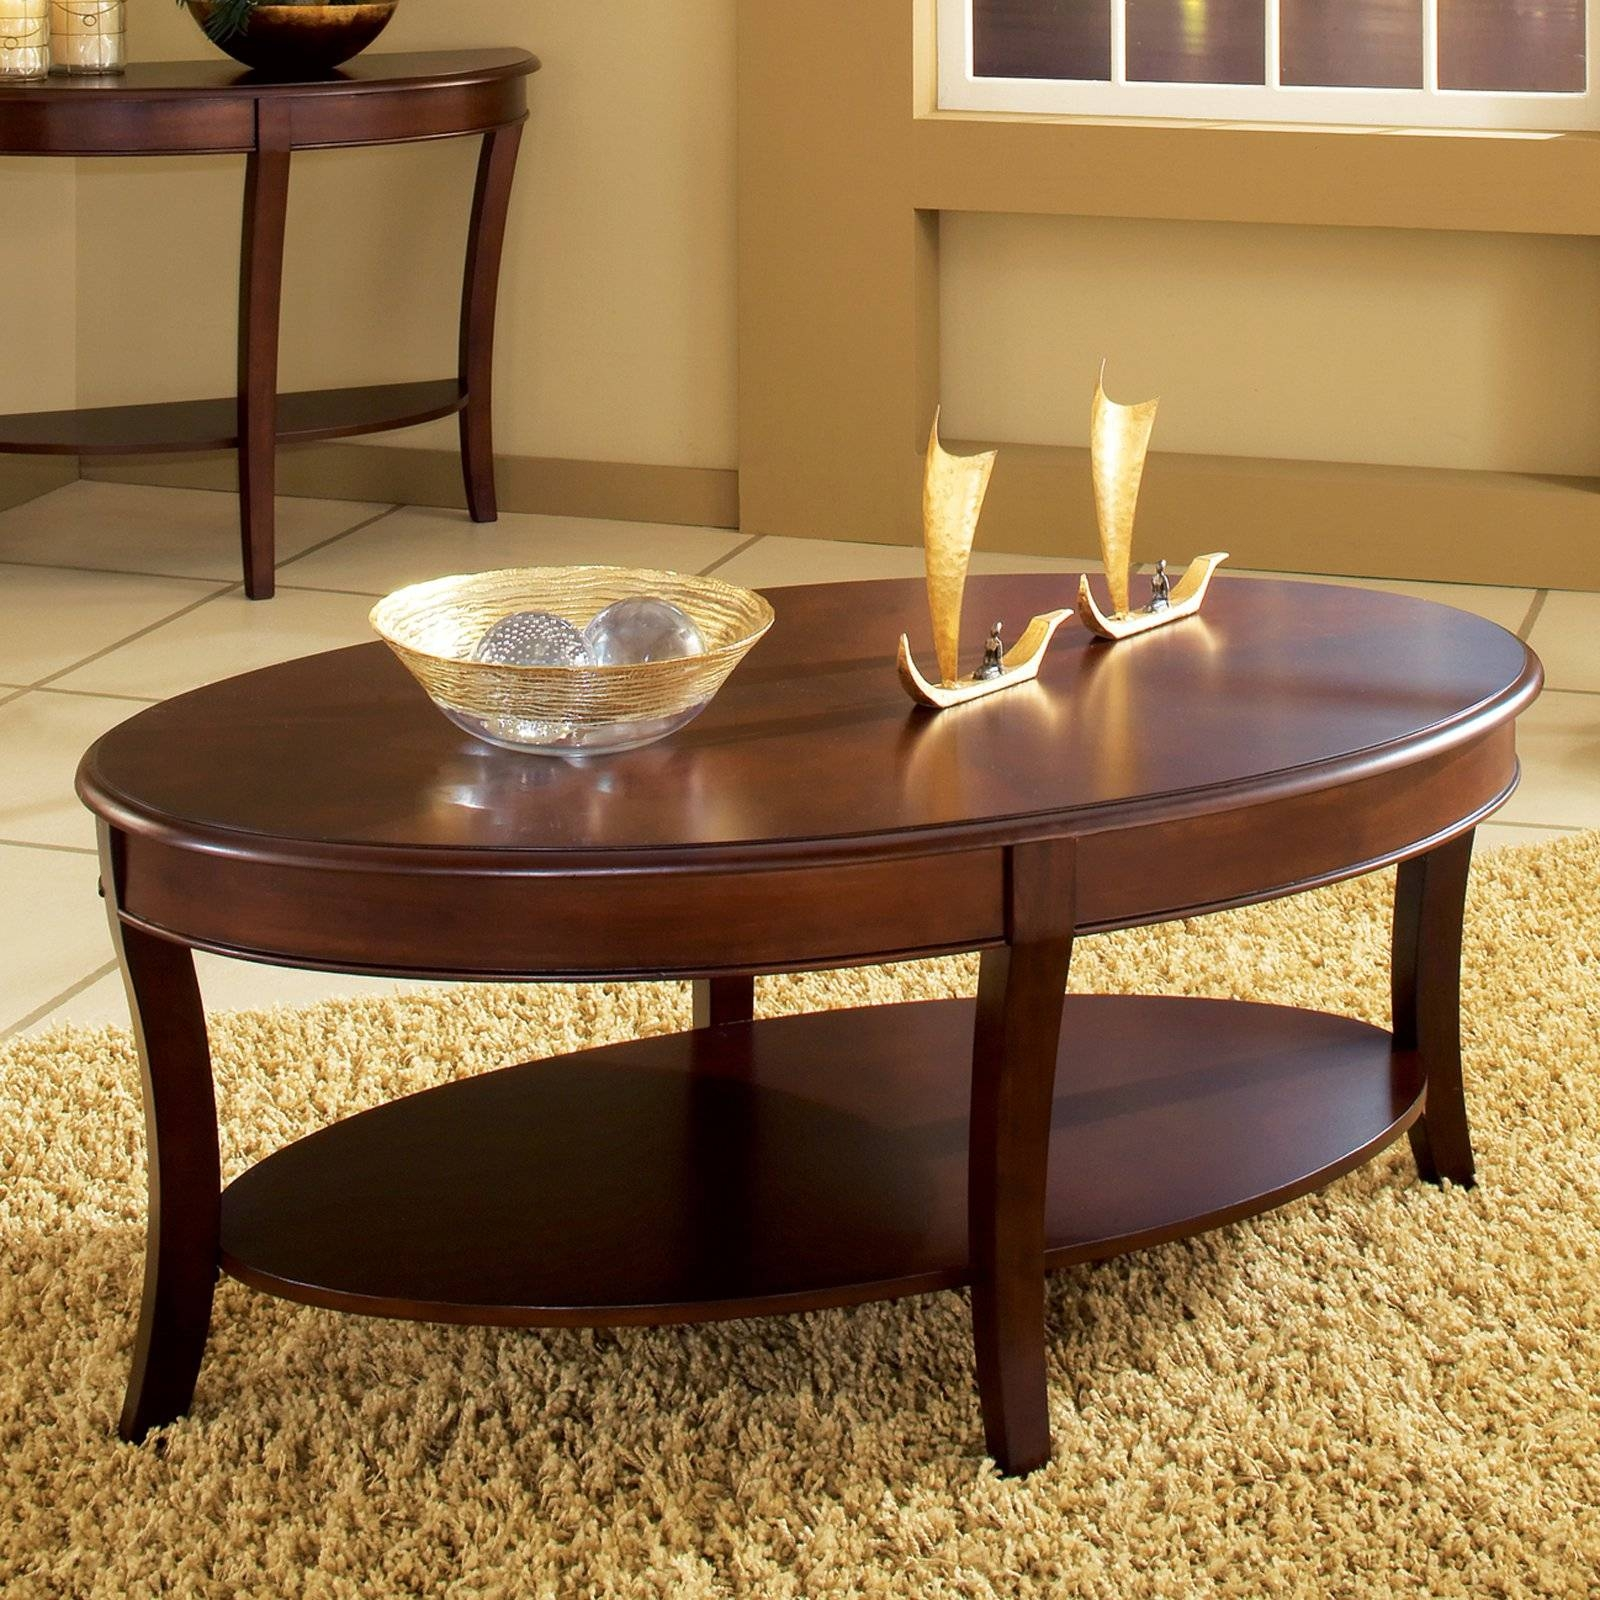 Wood Oval Coffee Table With Drawer The Shiny Tables Oblong B / Thippo intended for Oblong Coffee Tables (Image 30 of 30)